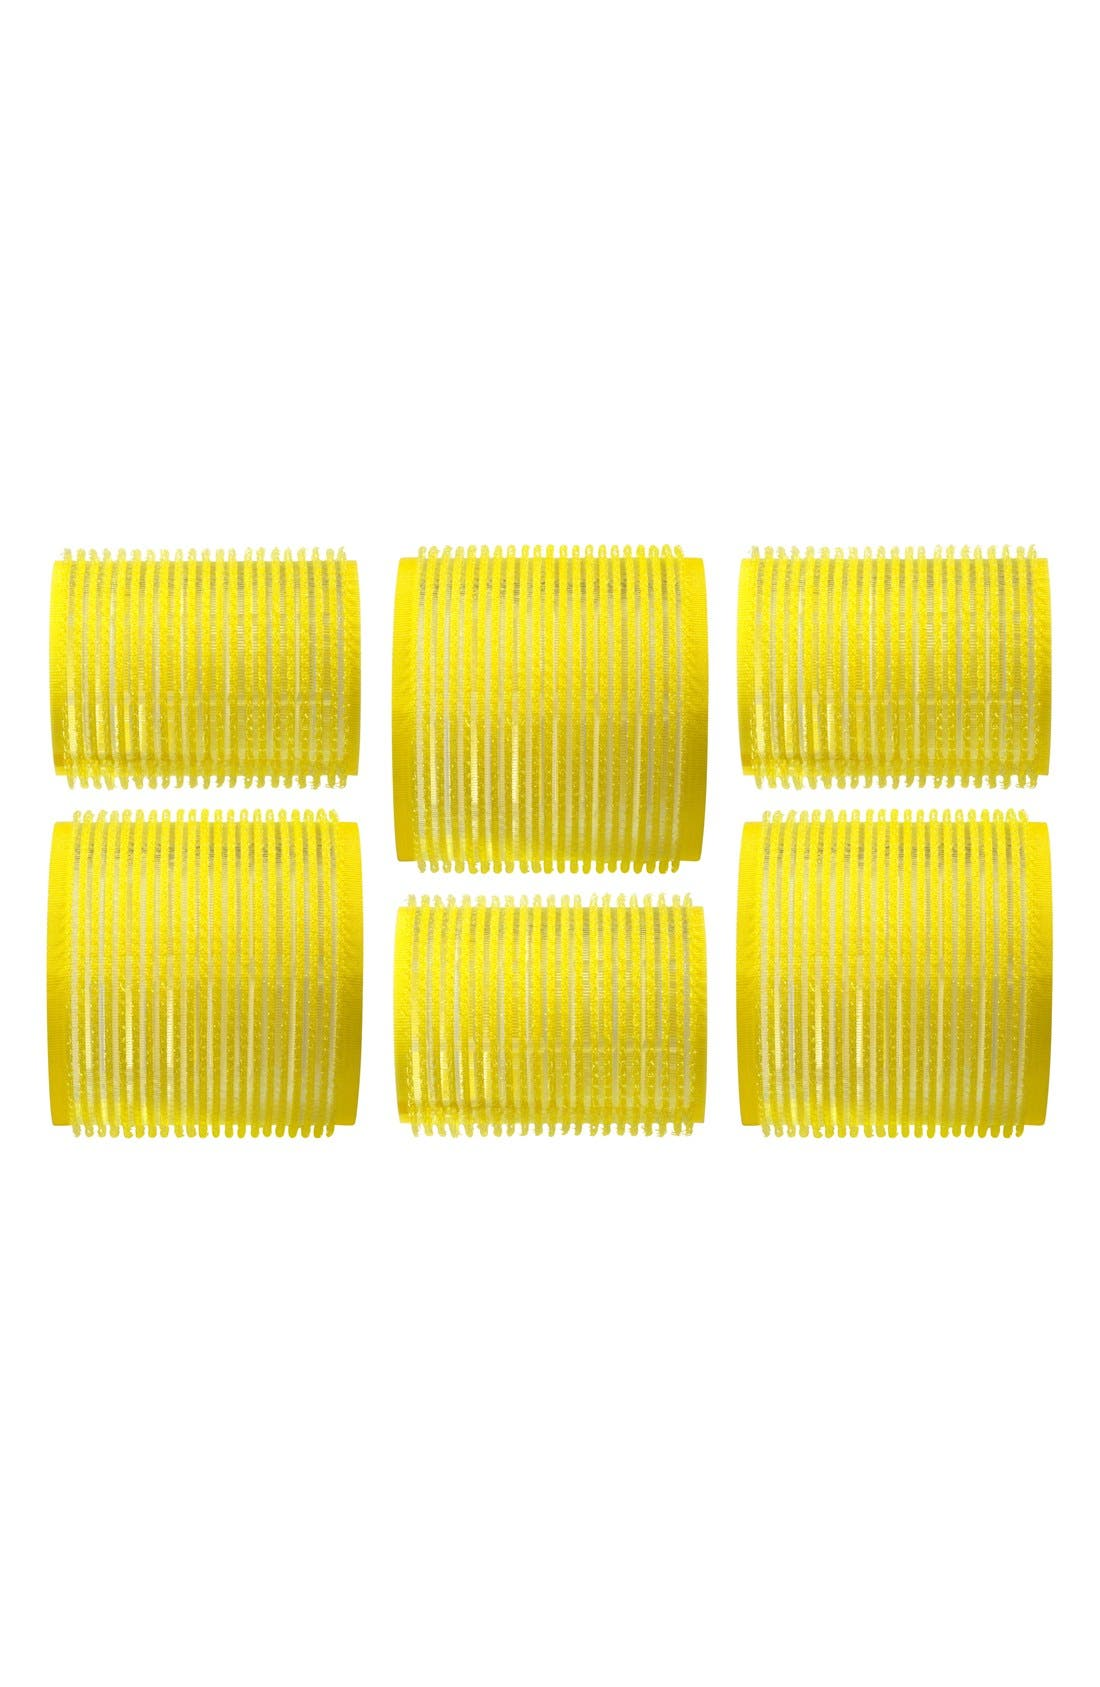 'High Tops' Self-Grip Rollers,                         Main,                         color, NO COLOR